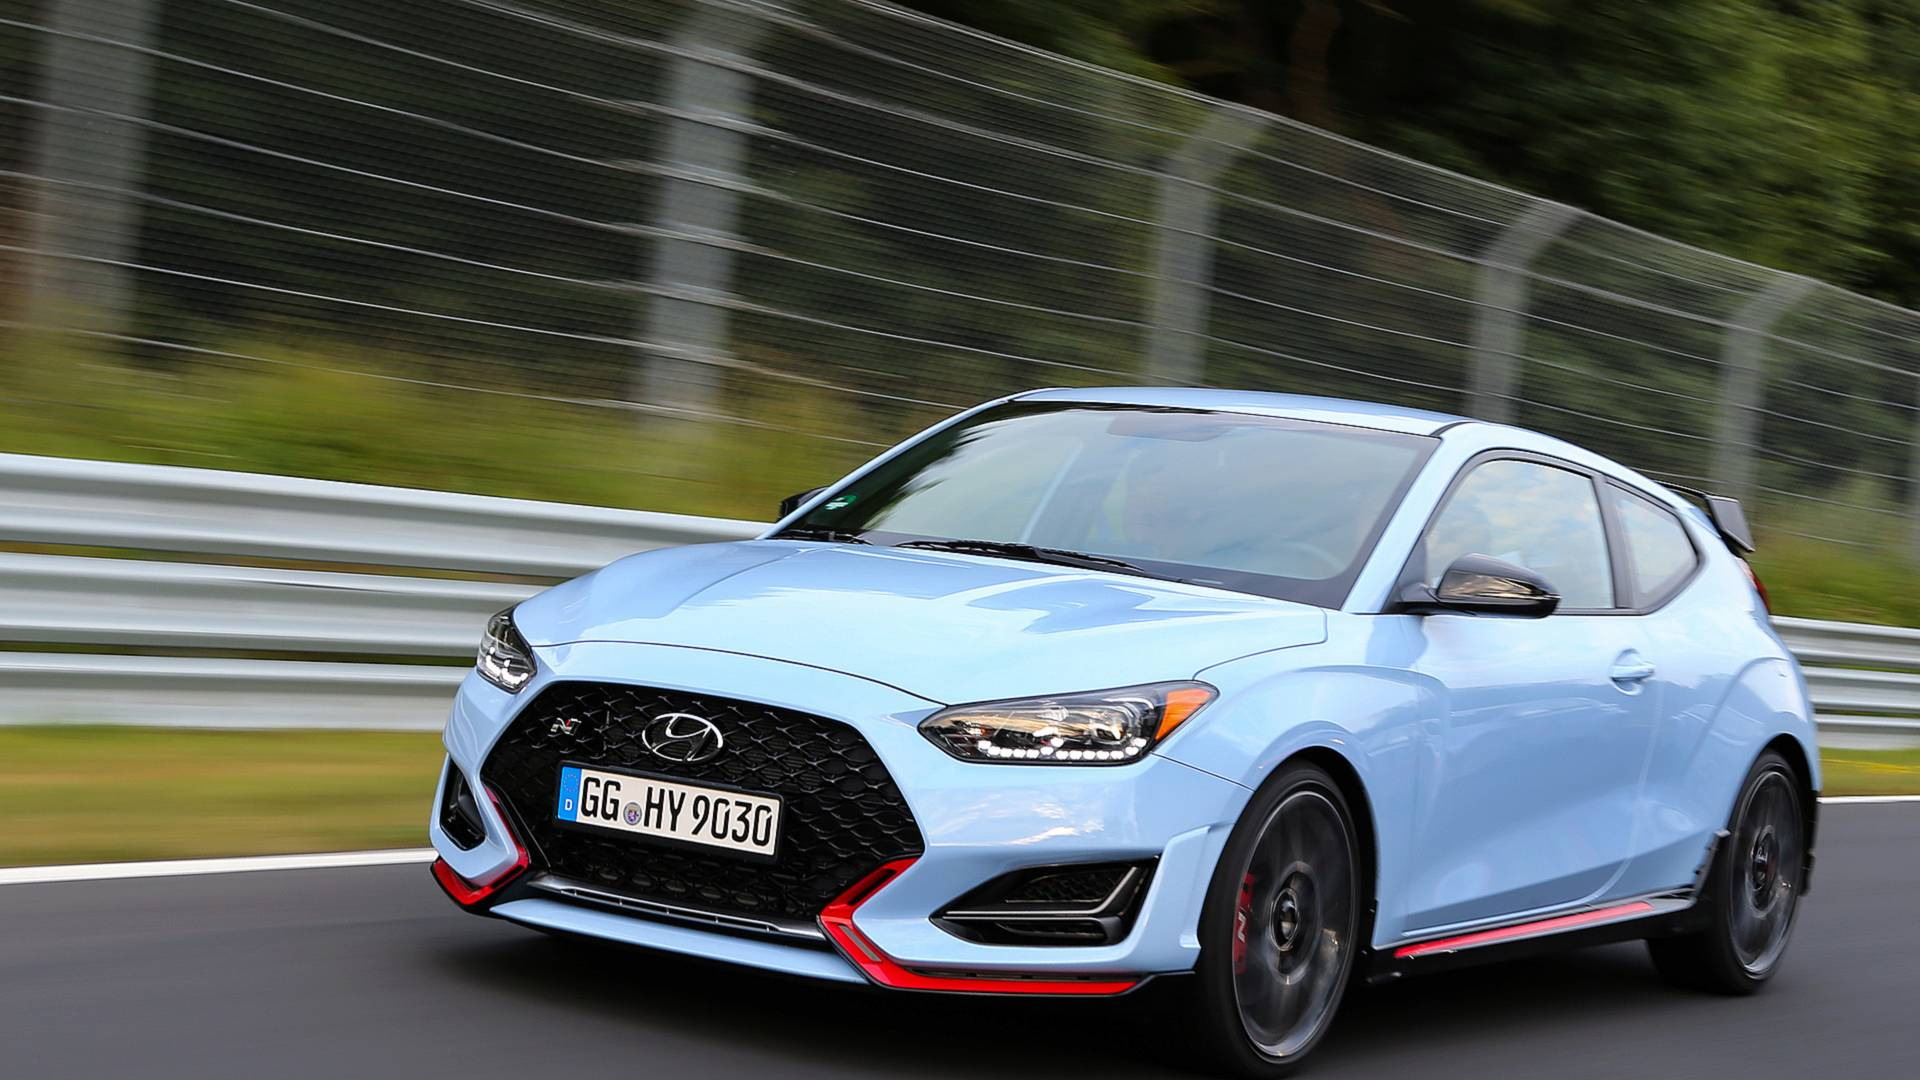 2020 Hyundai Veloster Front